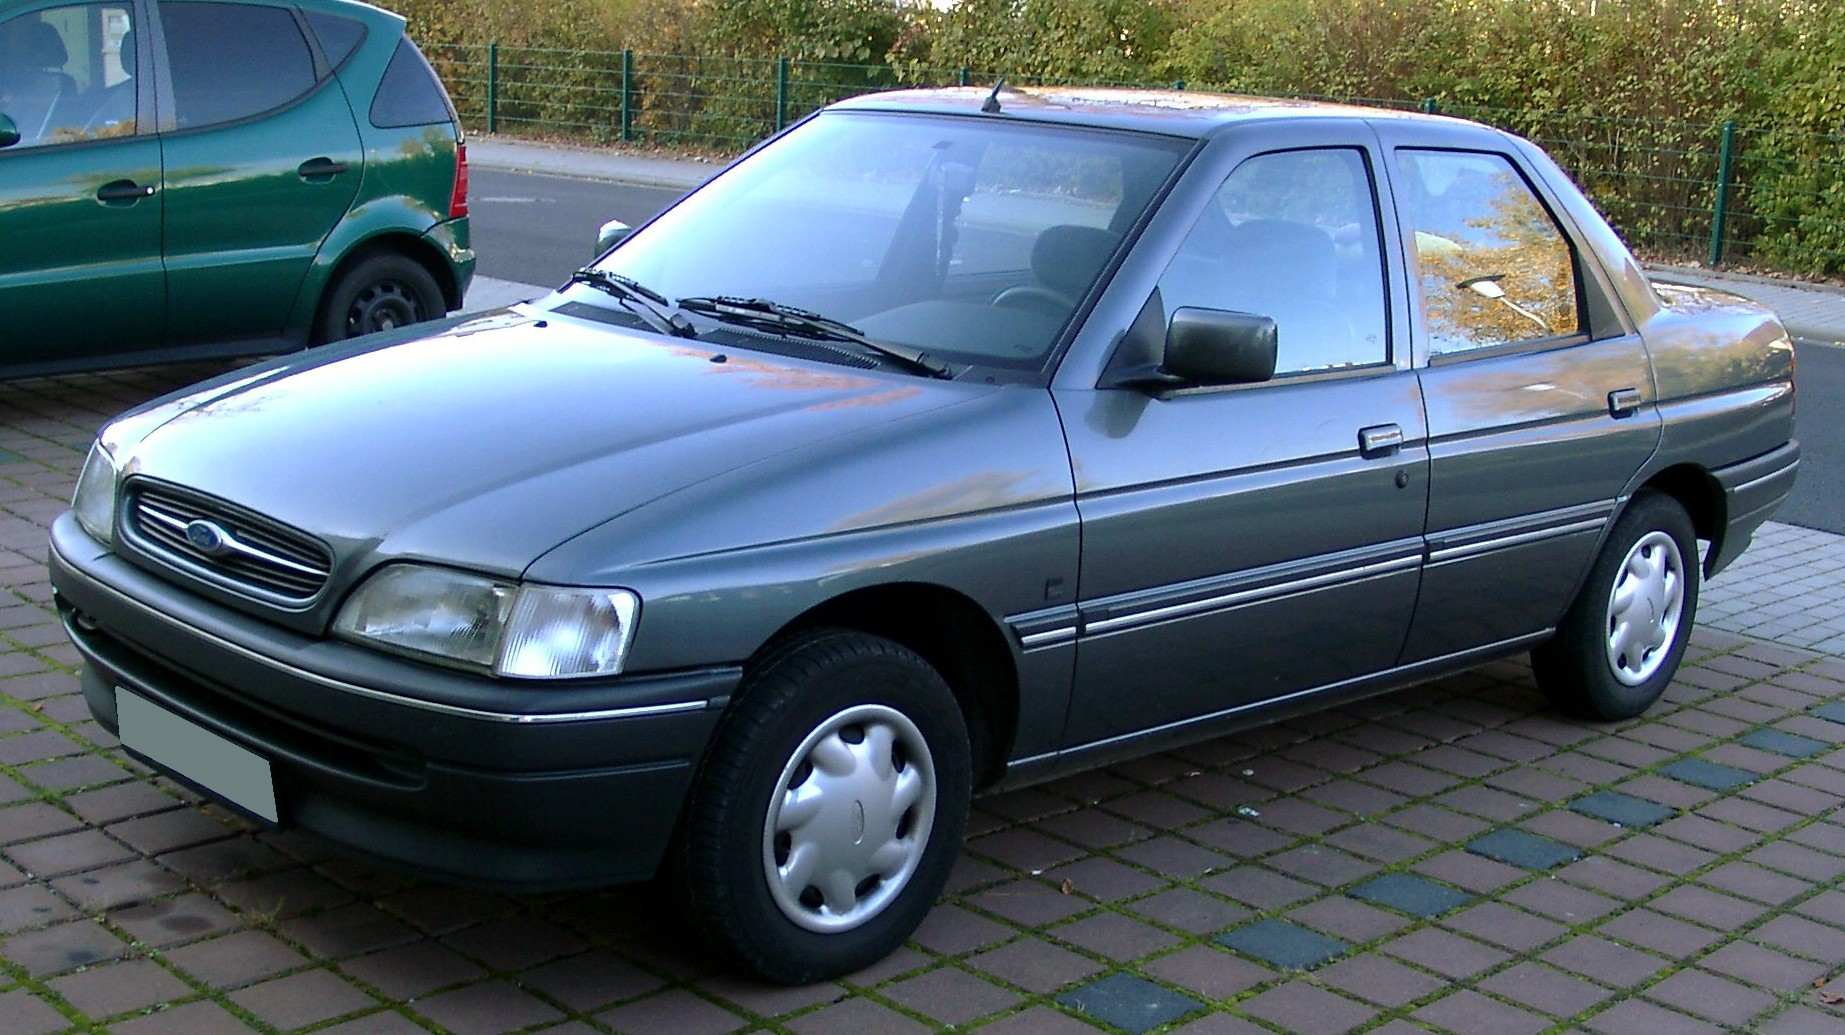 1992 Ford Orion #1